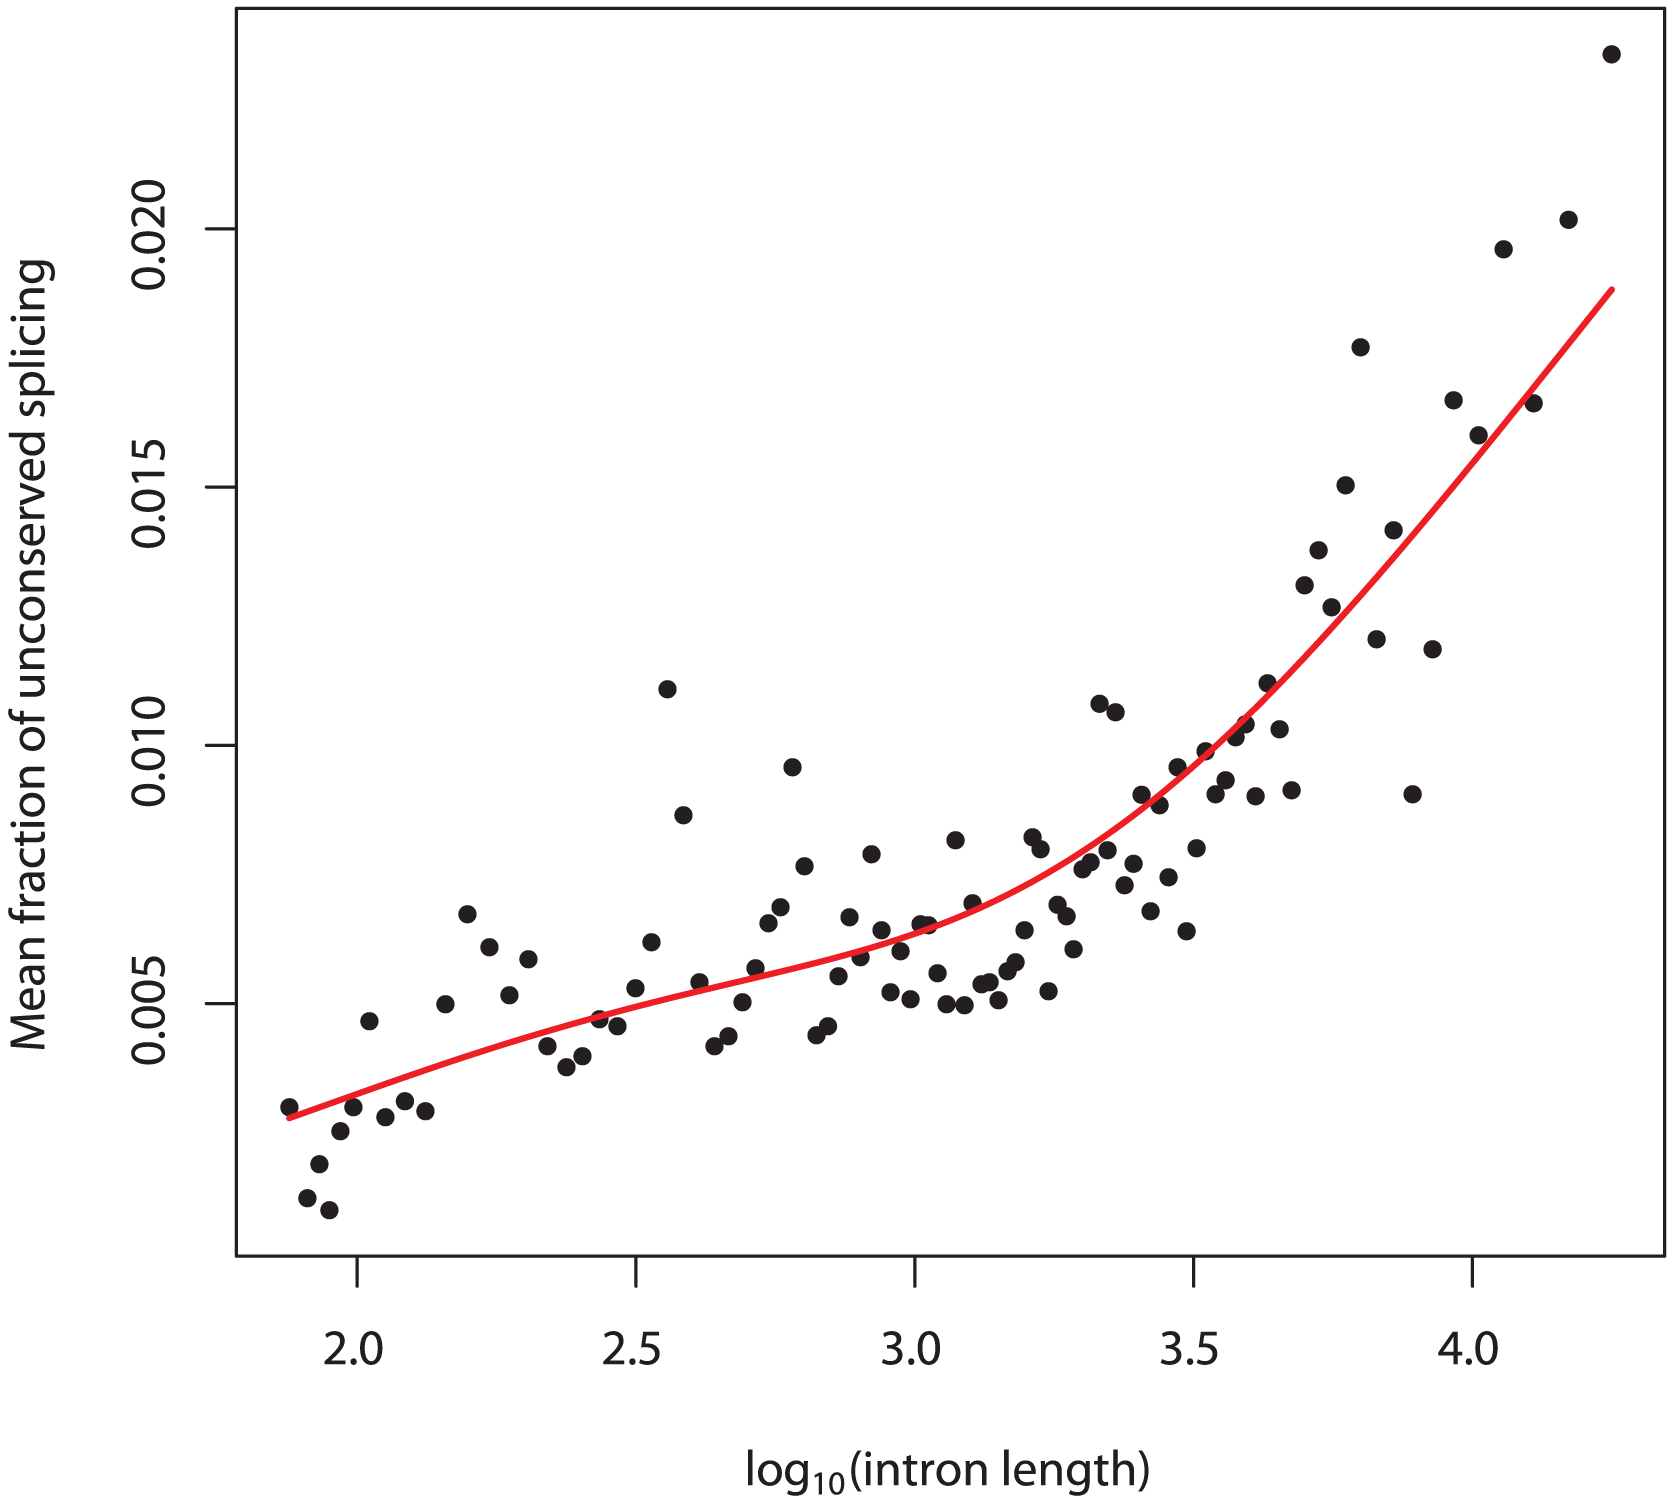 Splicing error rate correlates with intron length.